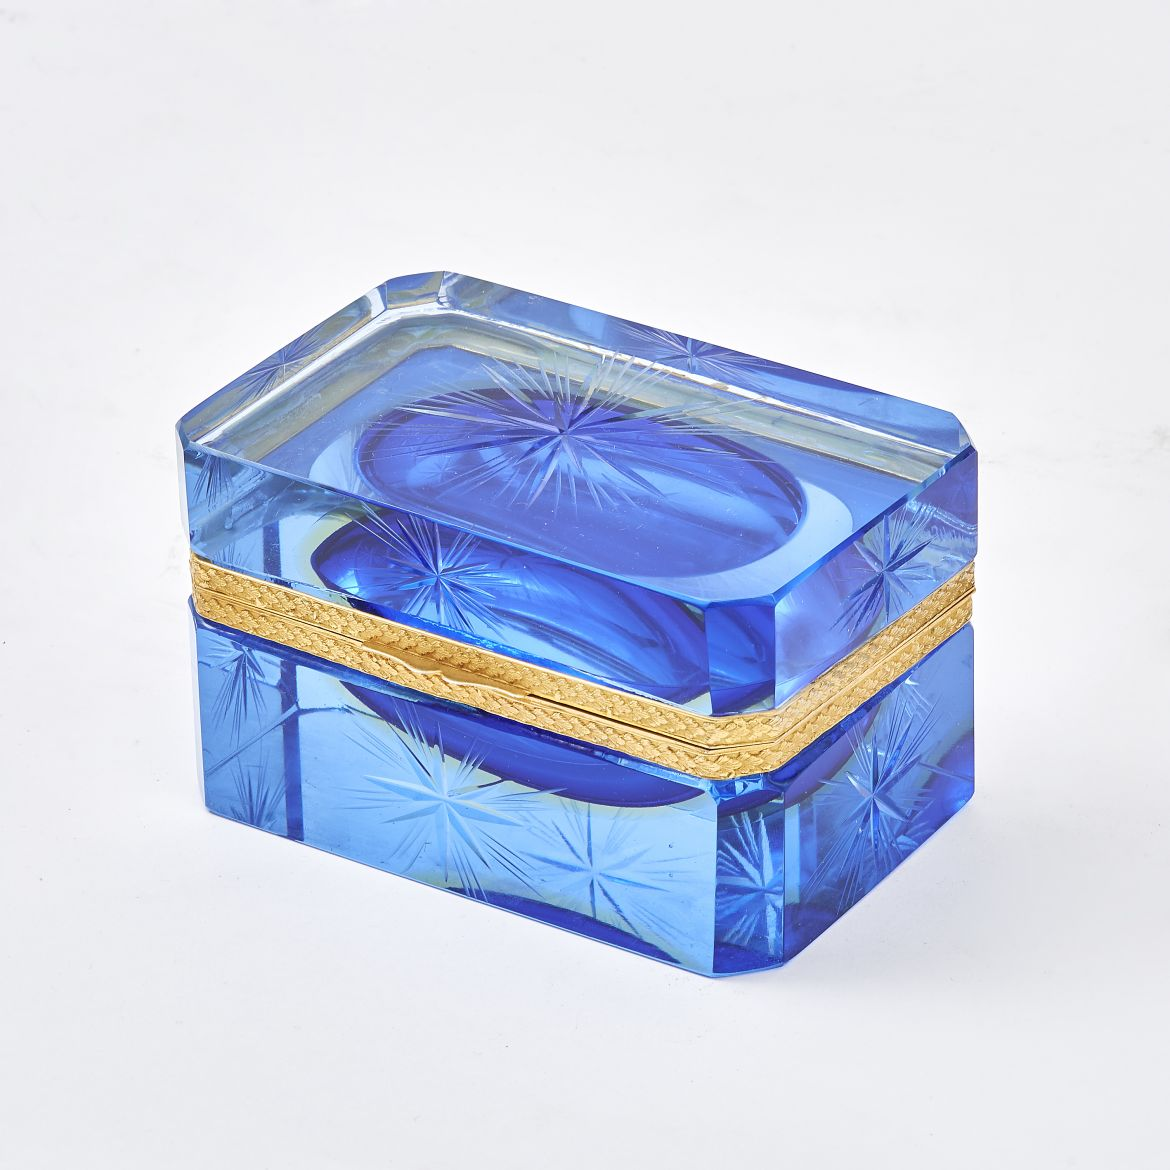 Blue Glass Casket With Star Cut Design